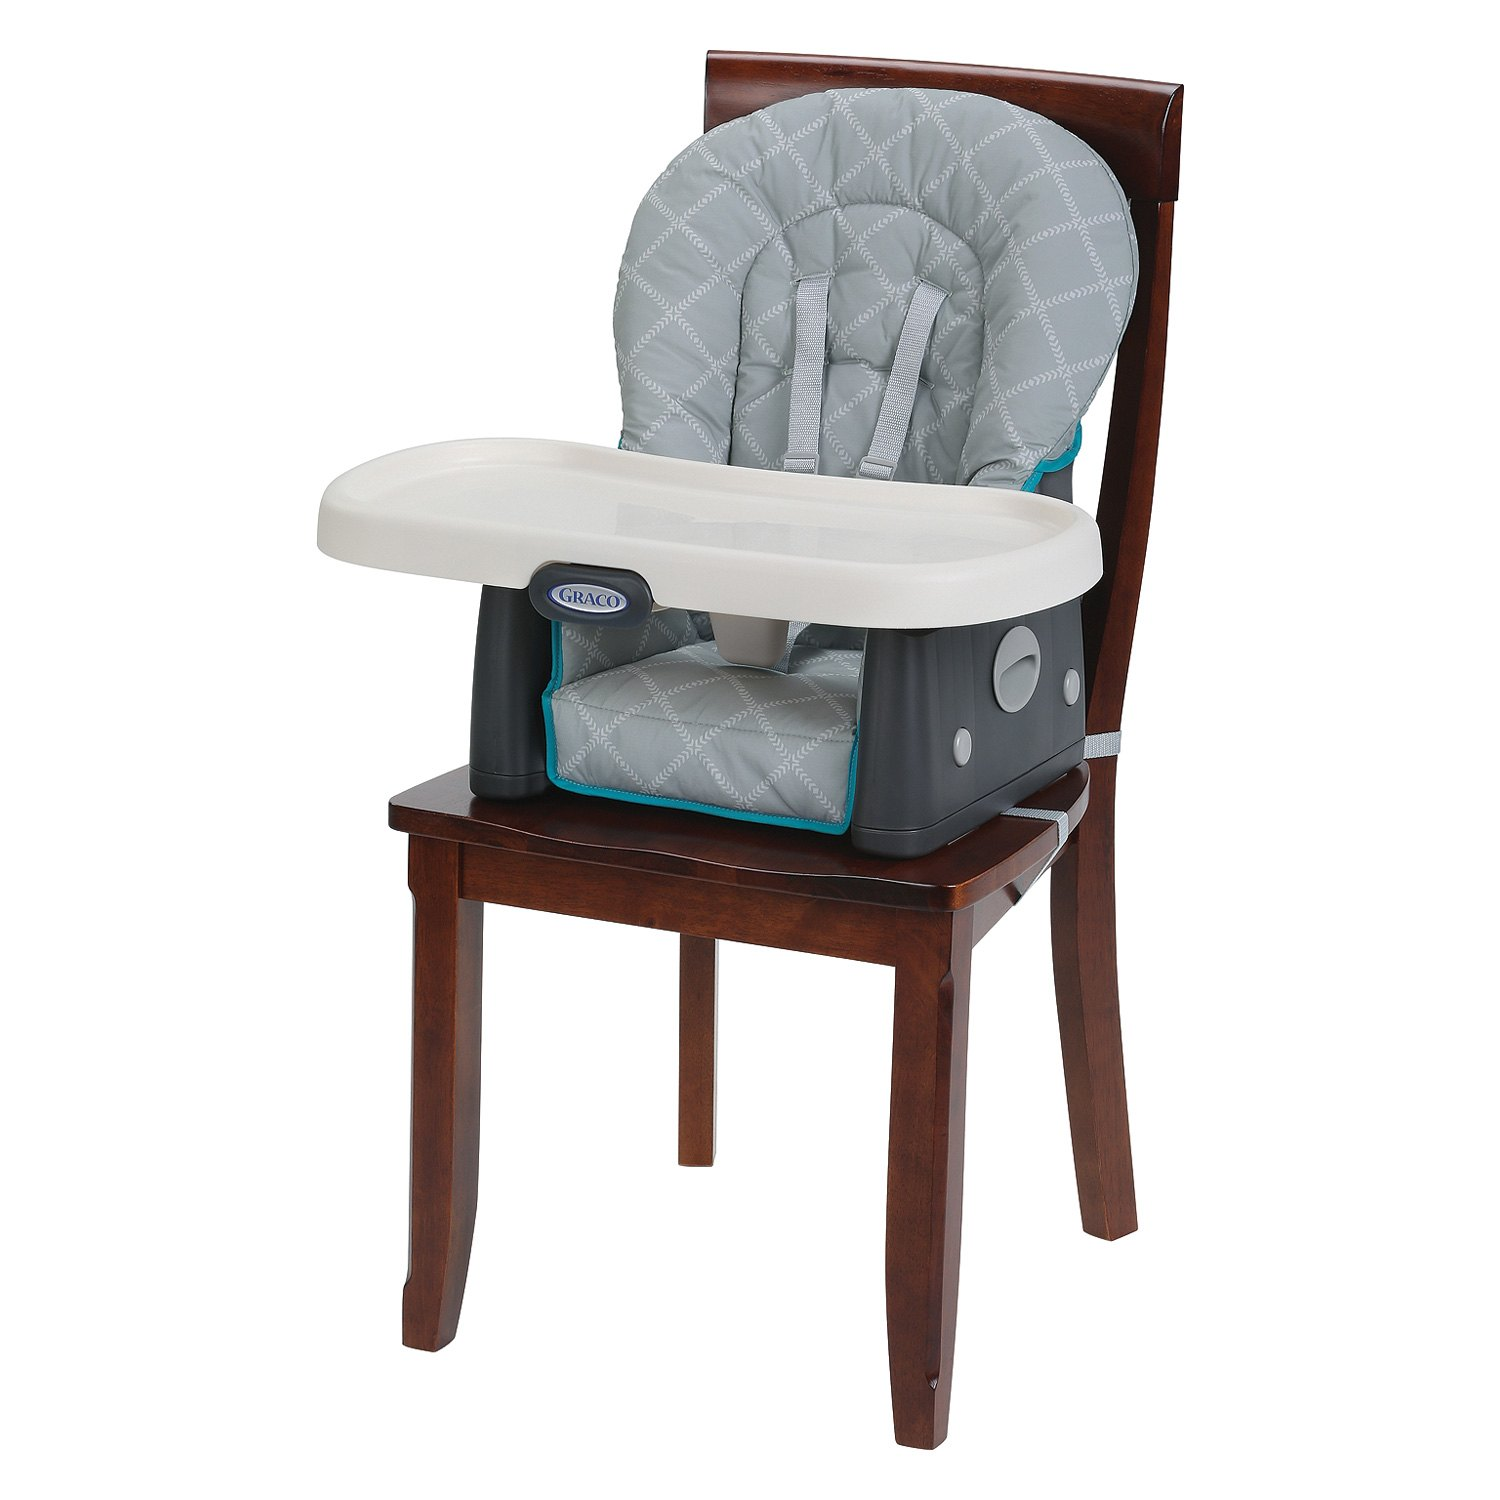 mothercare chair youtube contempo high graco watch